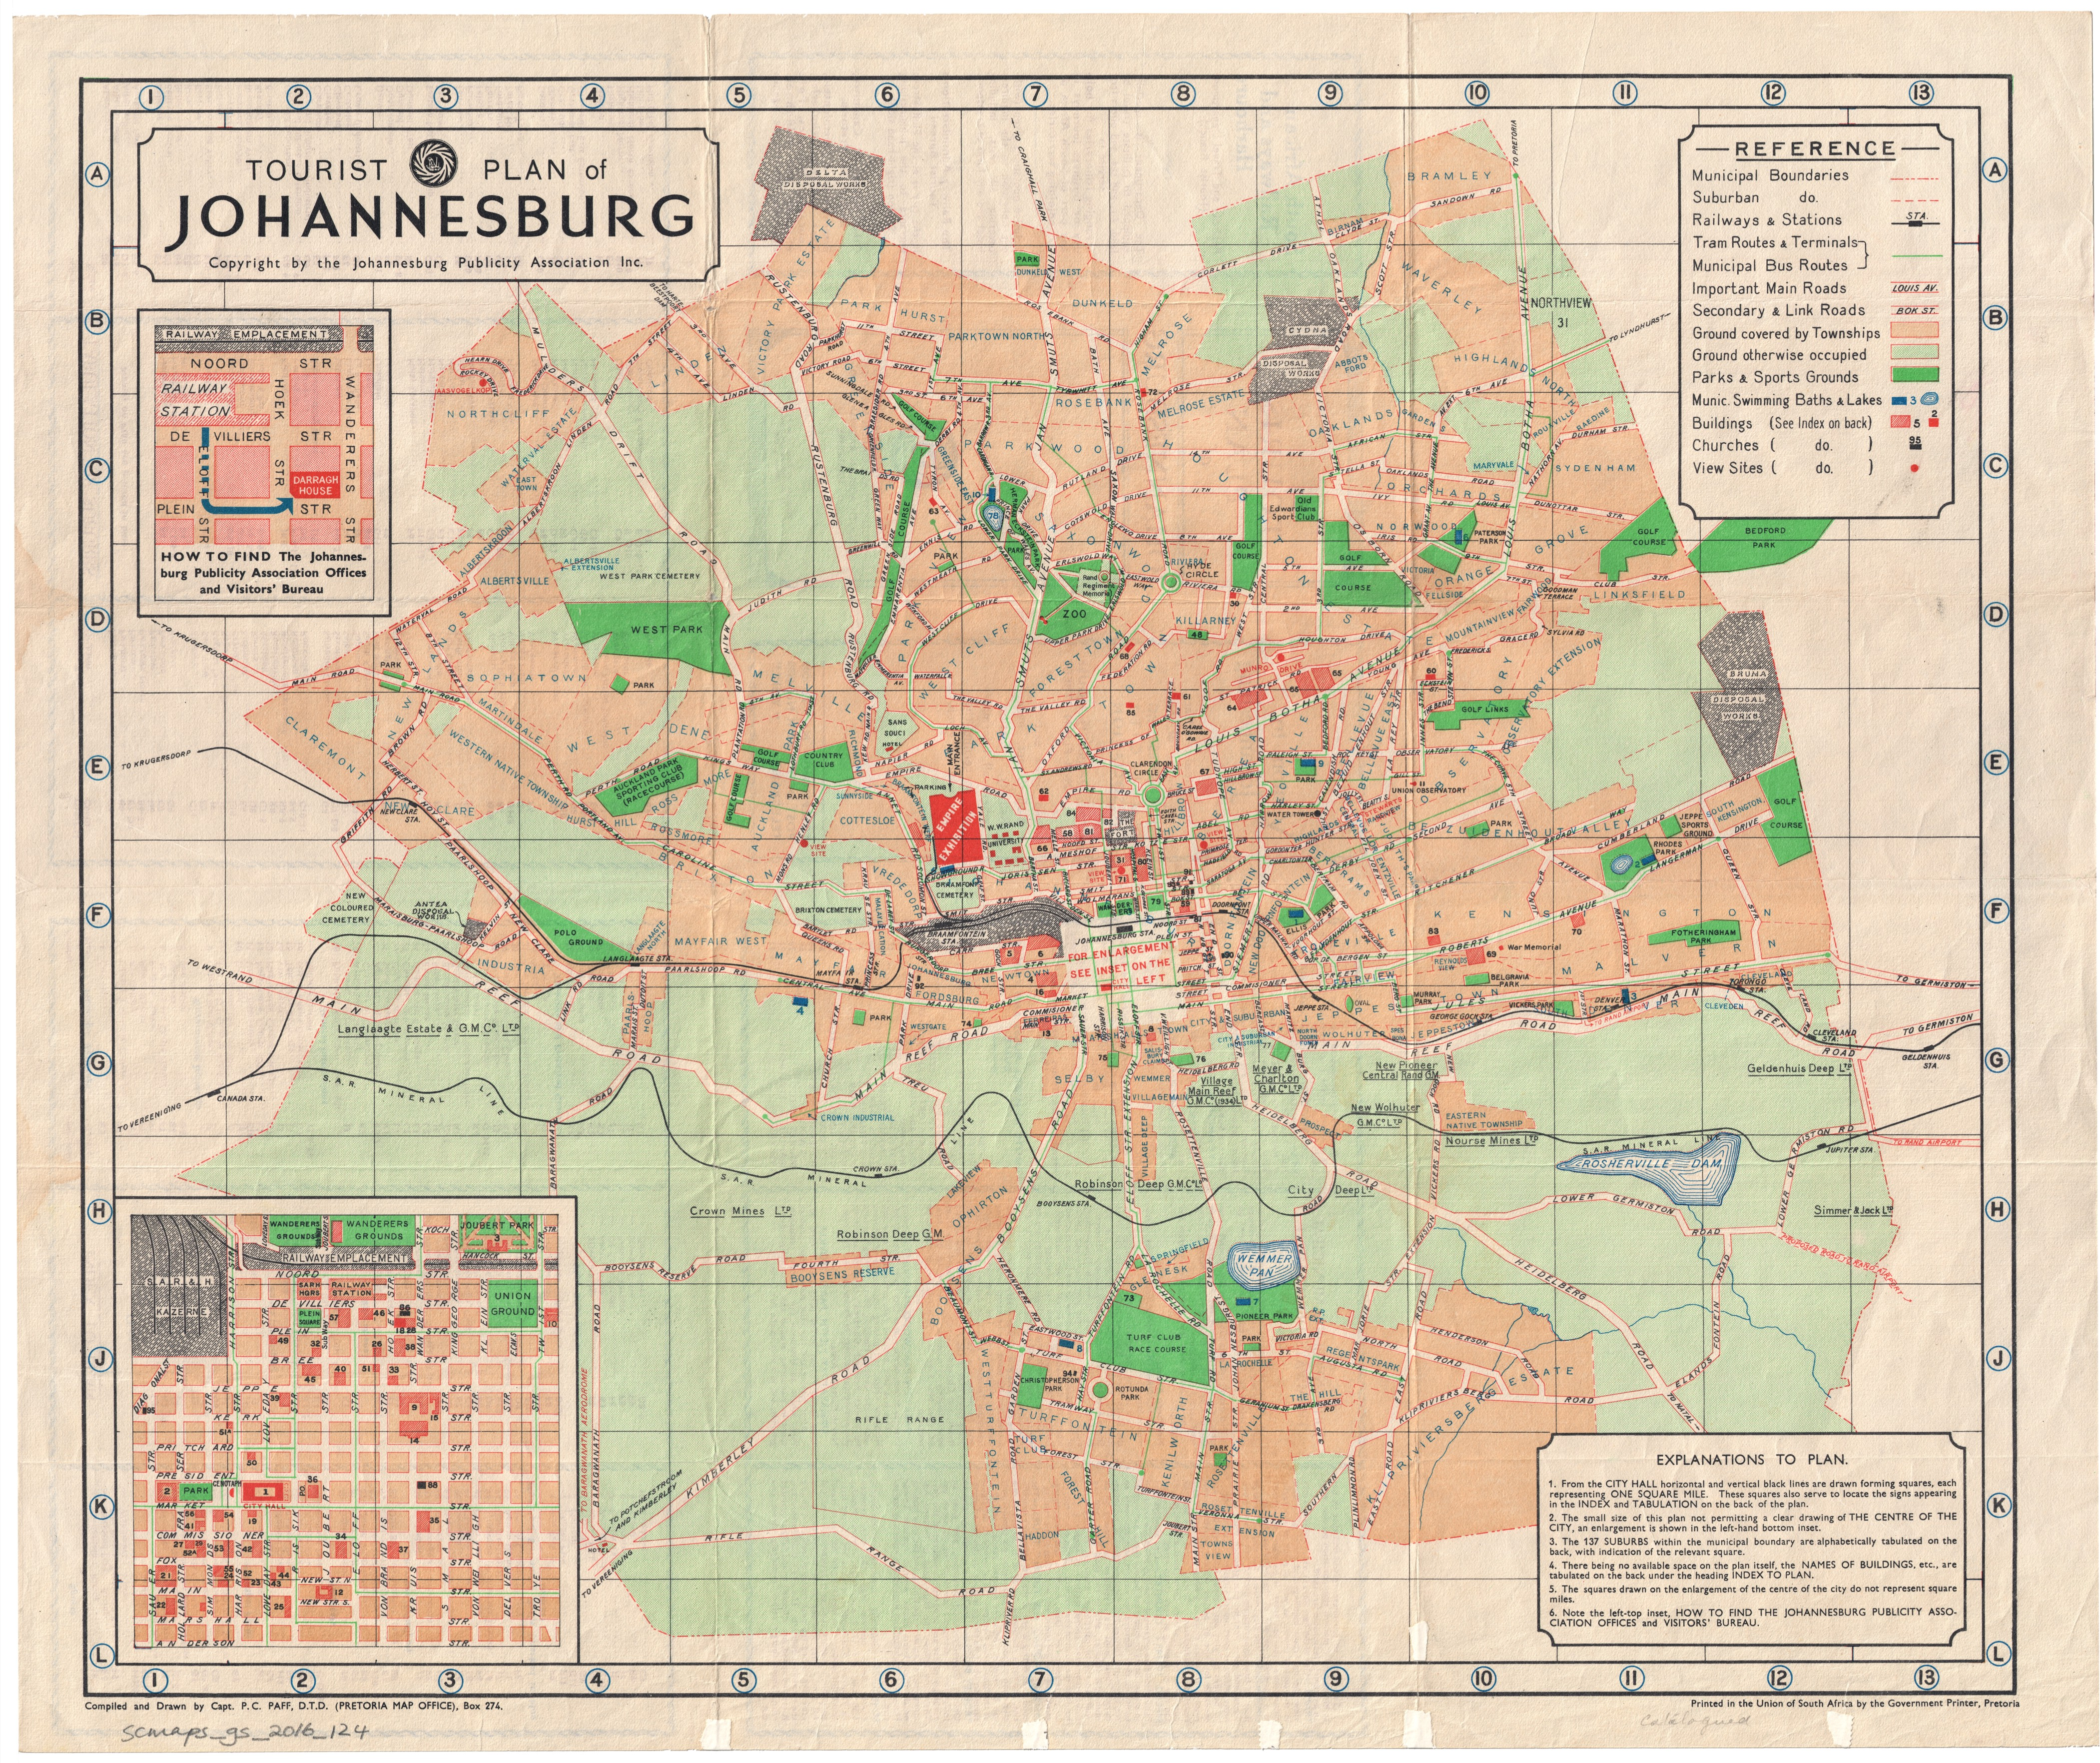 Tourist plan of Johannesburg UCT Libraries Digital Collections